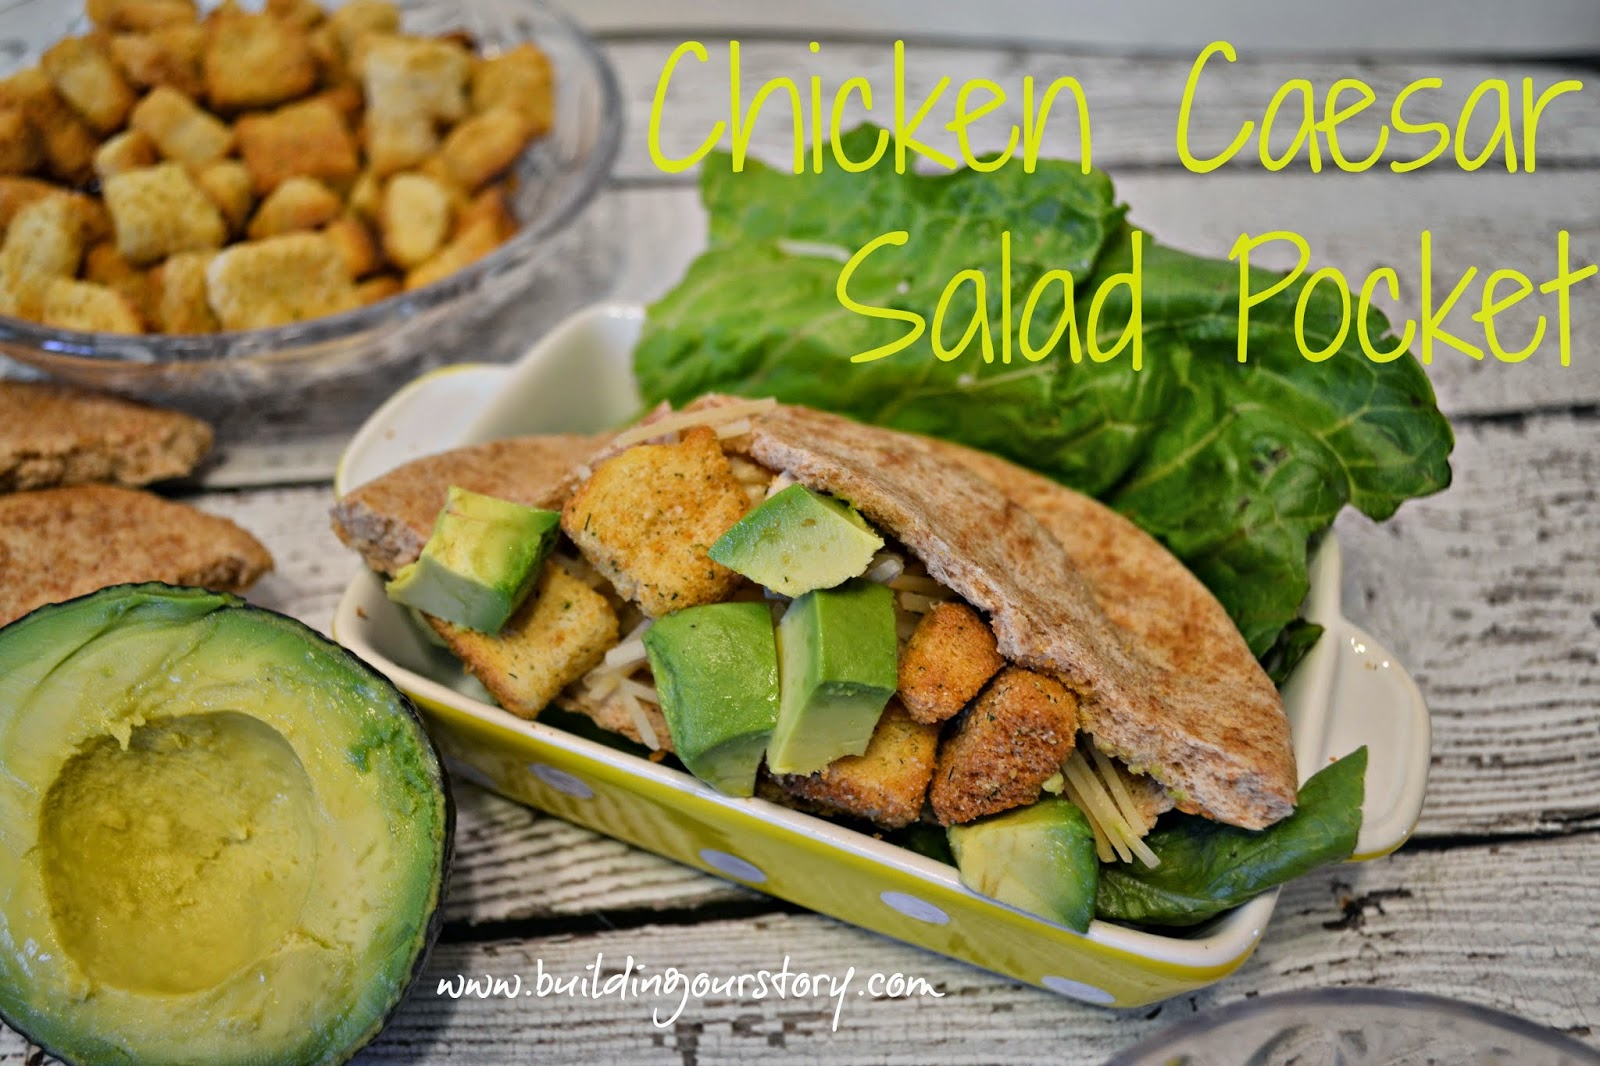 Chicken Caesar Salad Pocket #Recipe.  Crock Pot Chicken Caesar Salad Recipe